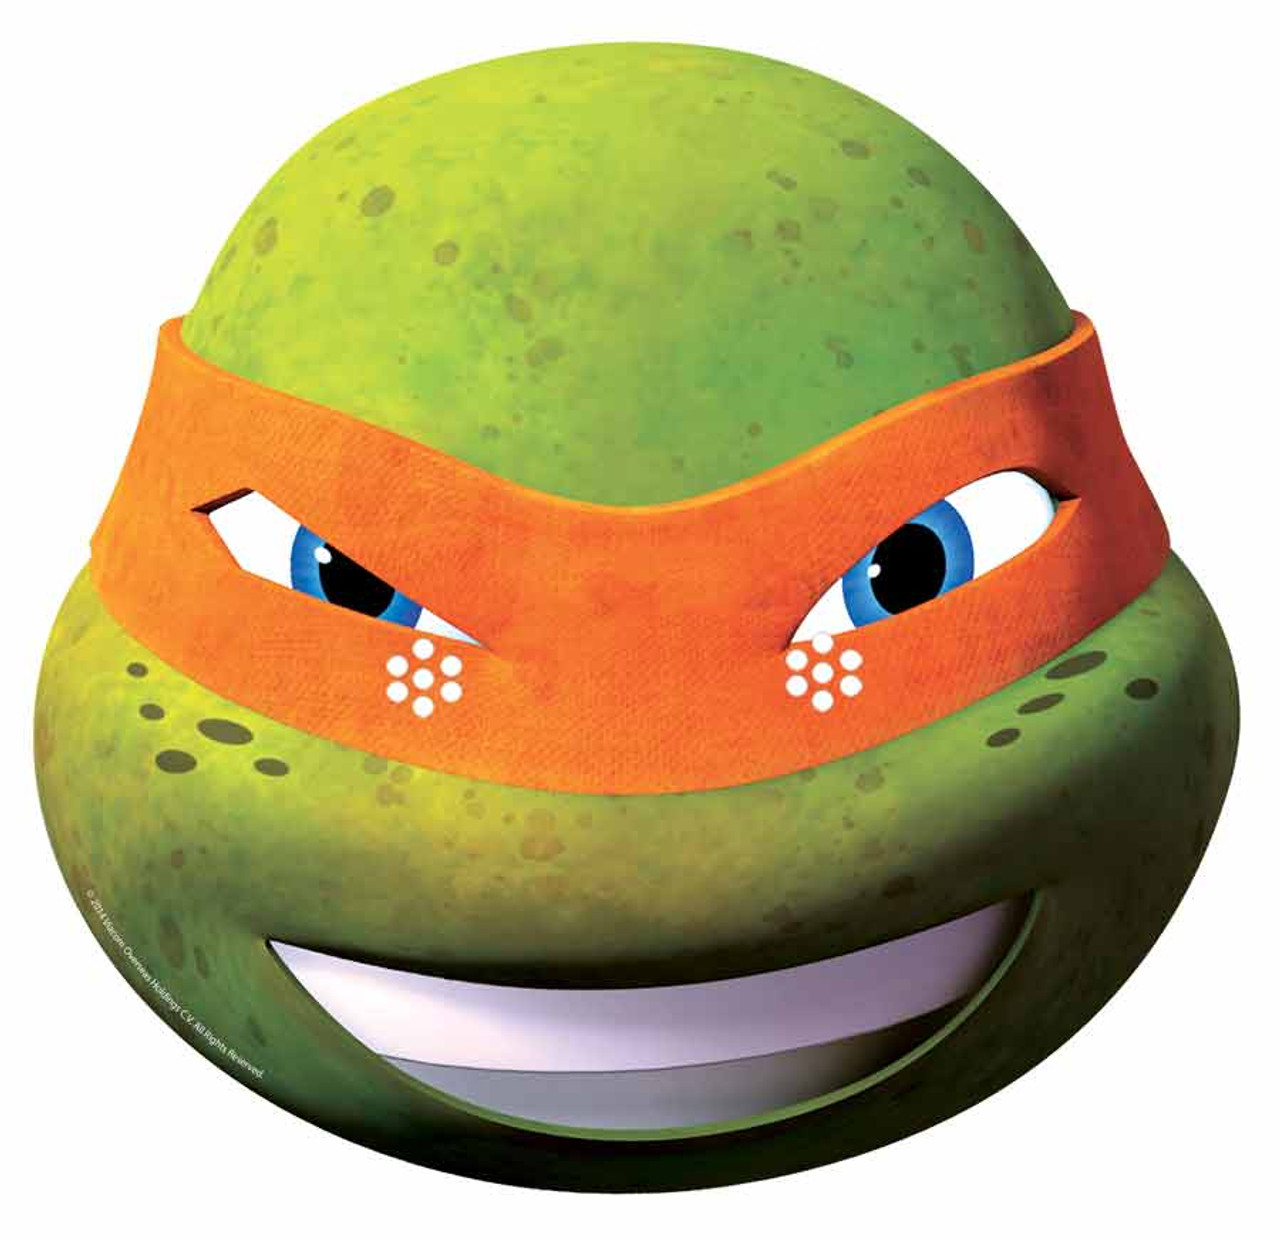 Cartoon Ninja Turtle Face | cartoon.ankaperla.com